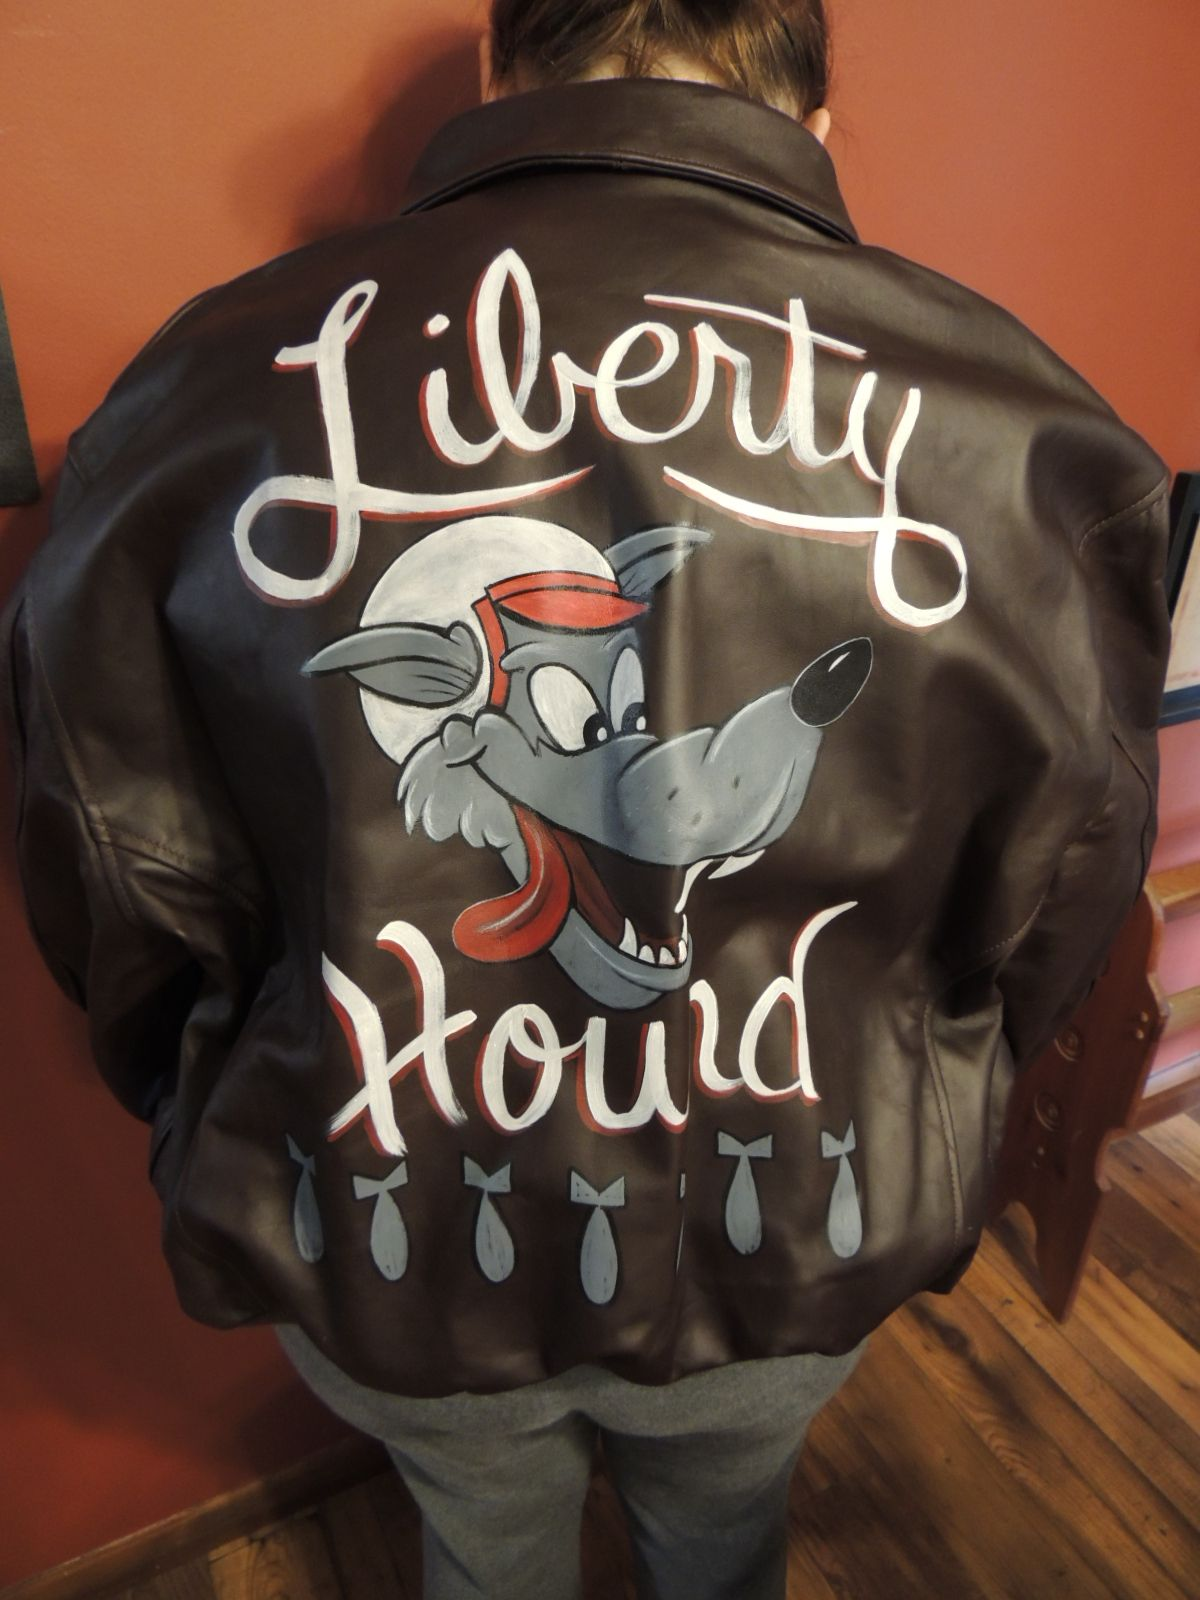 Best Motorcycle Jacket >> Motorcycle jacket by Dan McQuality of McQuality Nose Art Studio | McQUALITY NOSE ART STUDIO ...